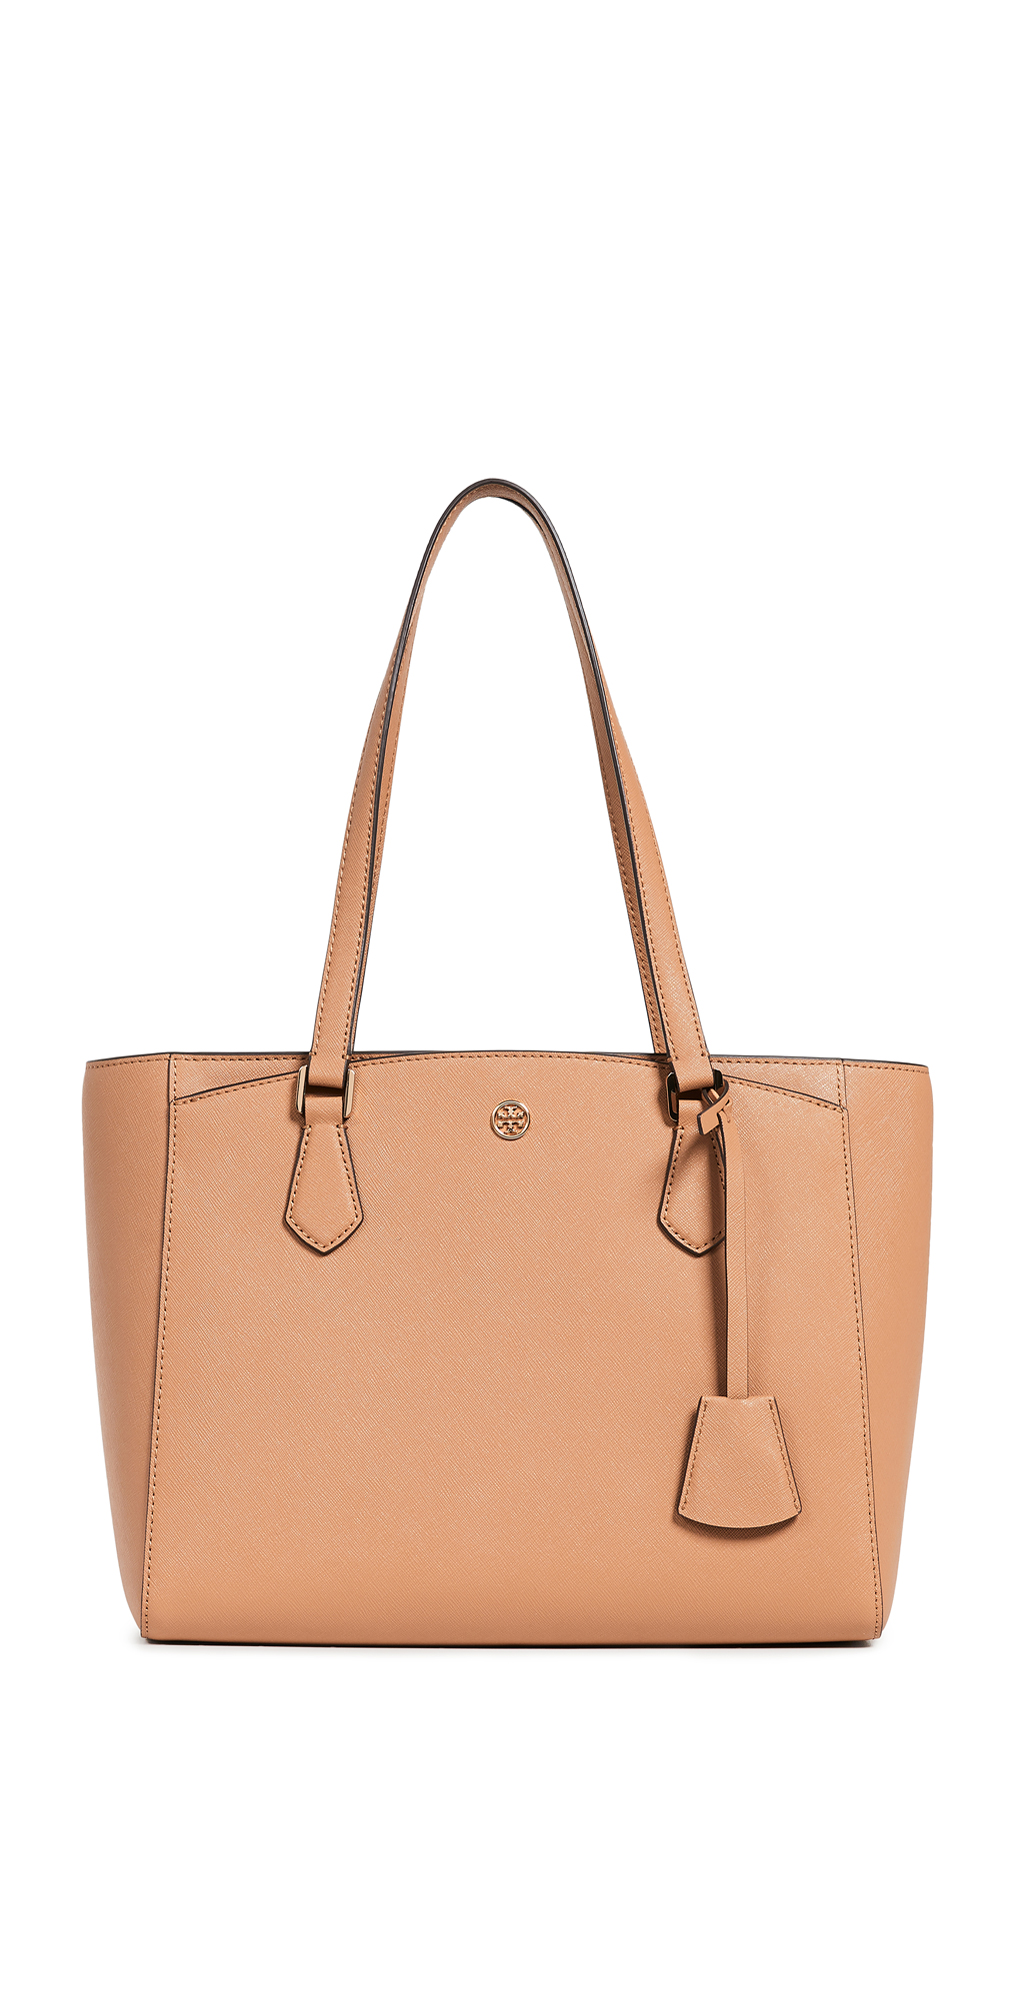 Tory Burch Robinson Small Tote Bag